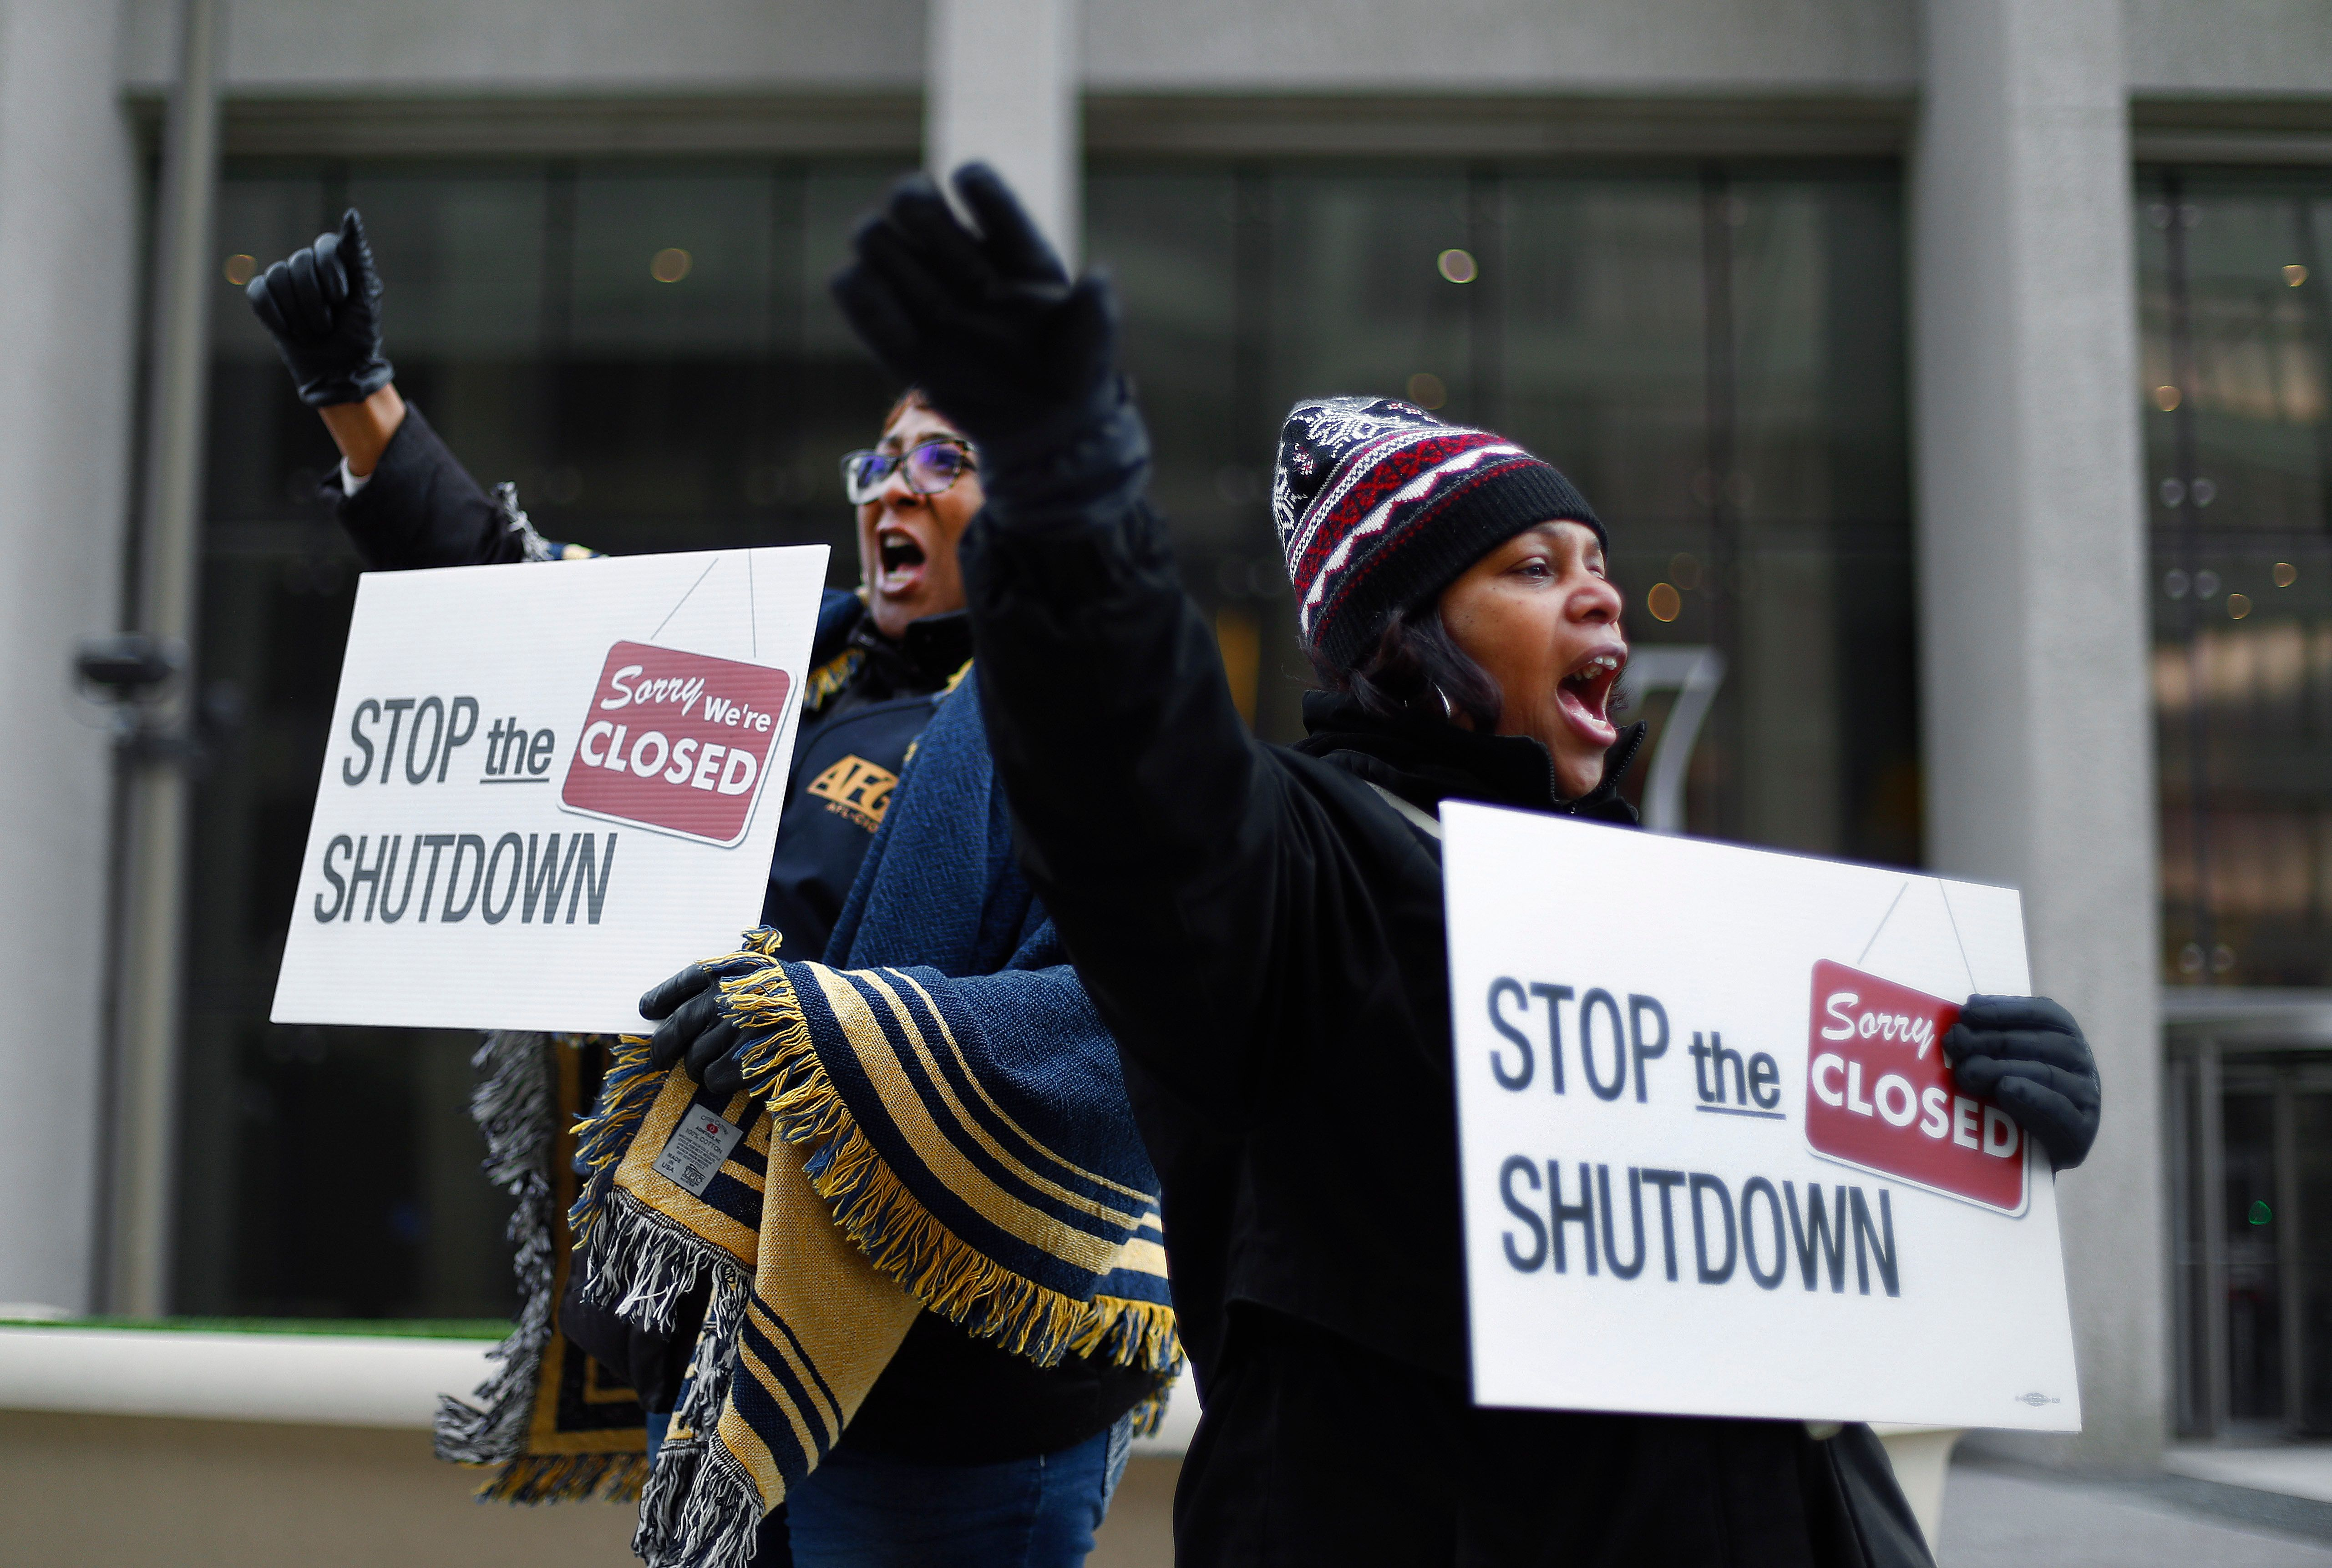 Cheryl Monroe, right, a Food and Drug Administration employee, and Bertrice Sanders, a Social Security Administration employee, rally to call for an end to the partial government shutdown in Detroit, Thursday, Jan. 10, 2019. (AP Photo/Paul Sancya)